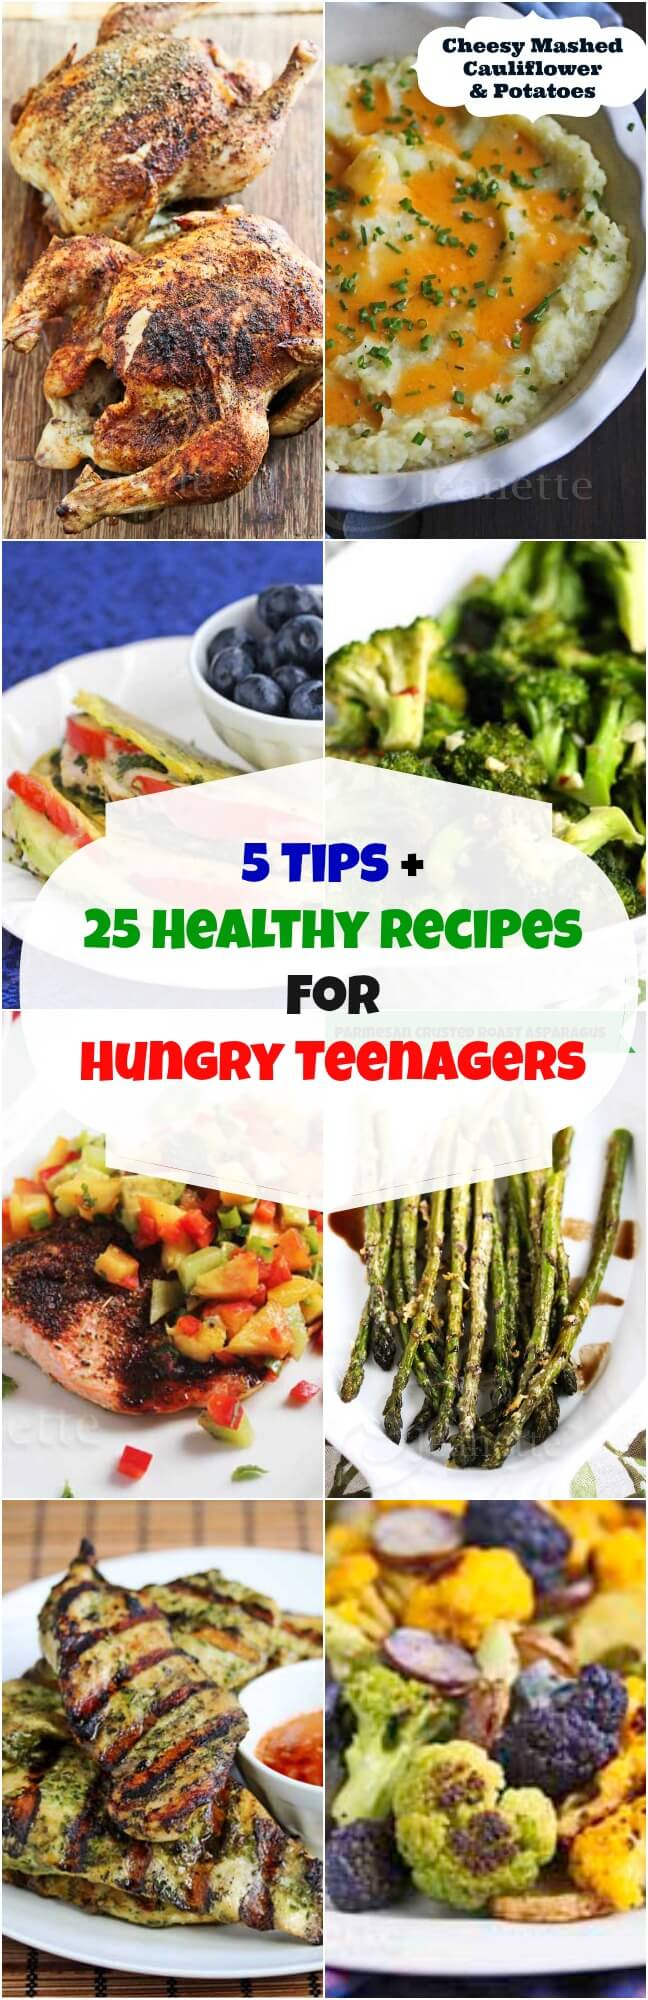 5 Tips and 25 Healthy Recipes for Hungry Teenagers